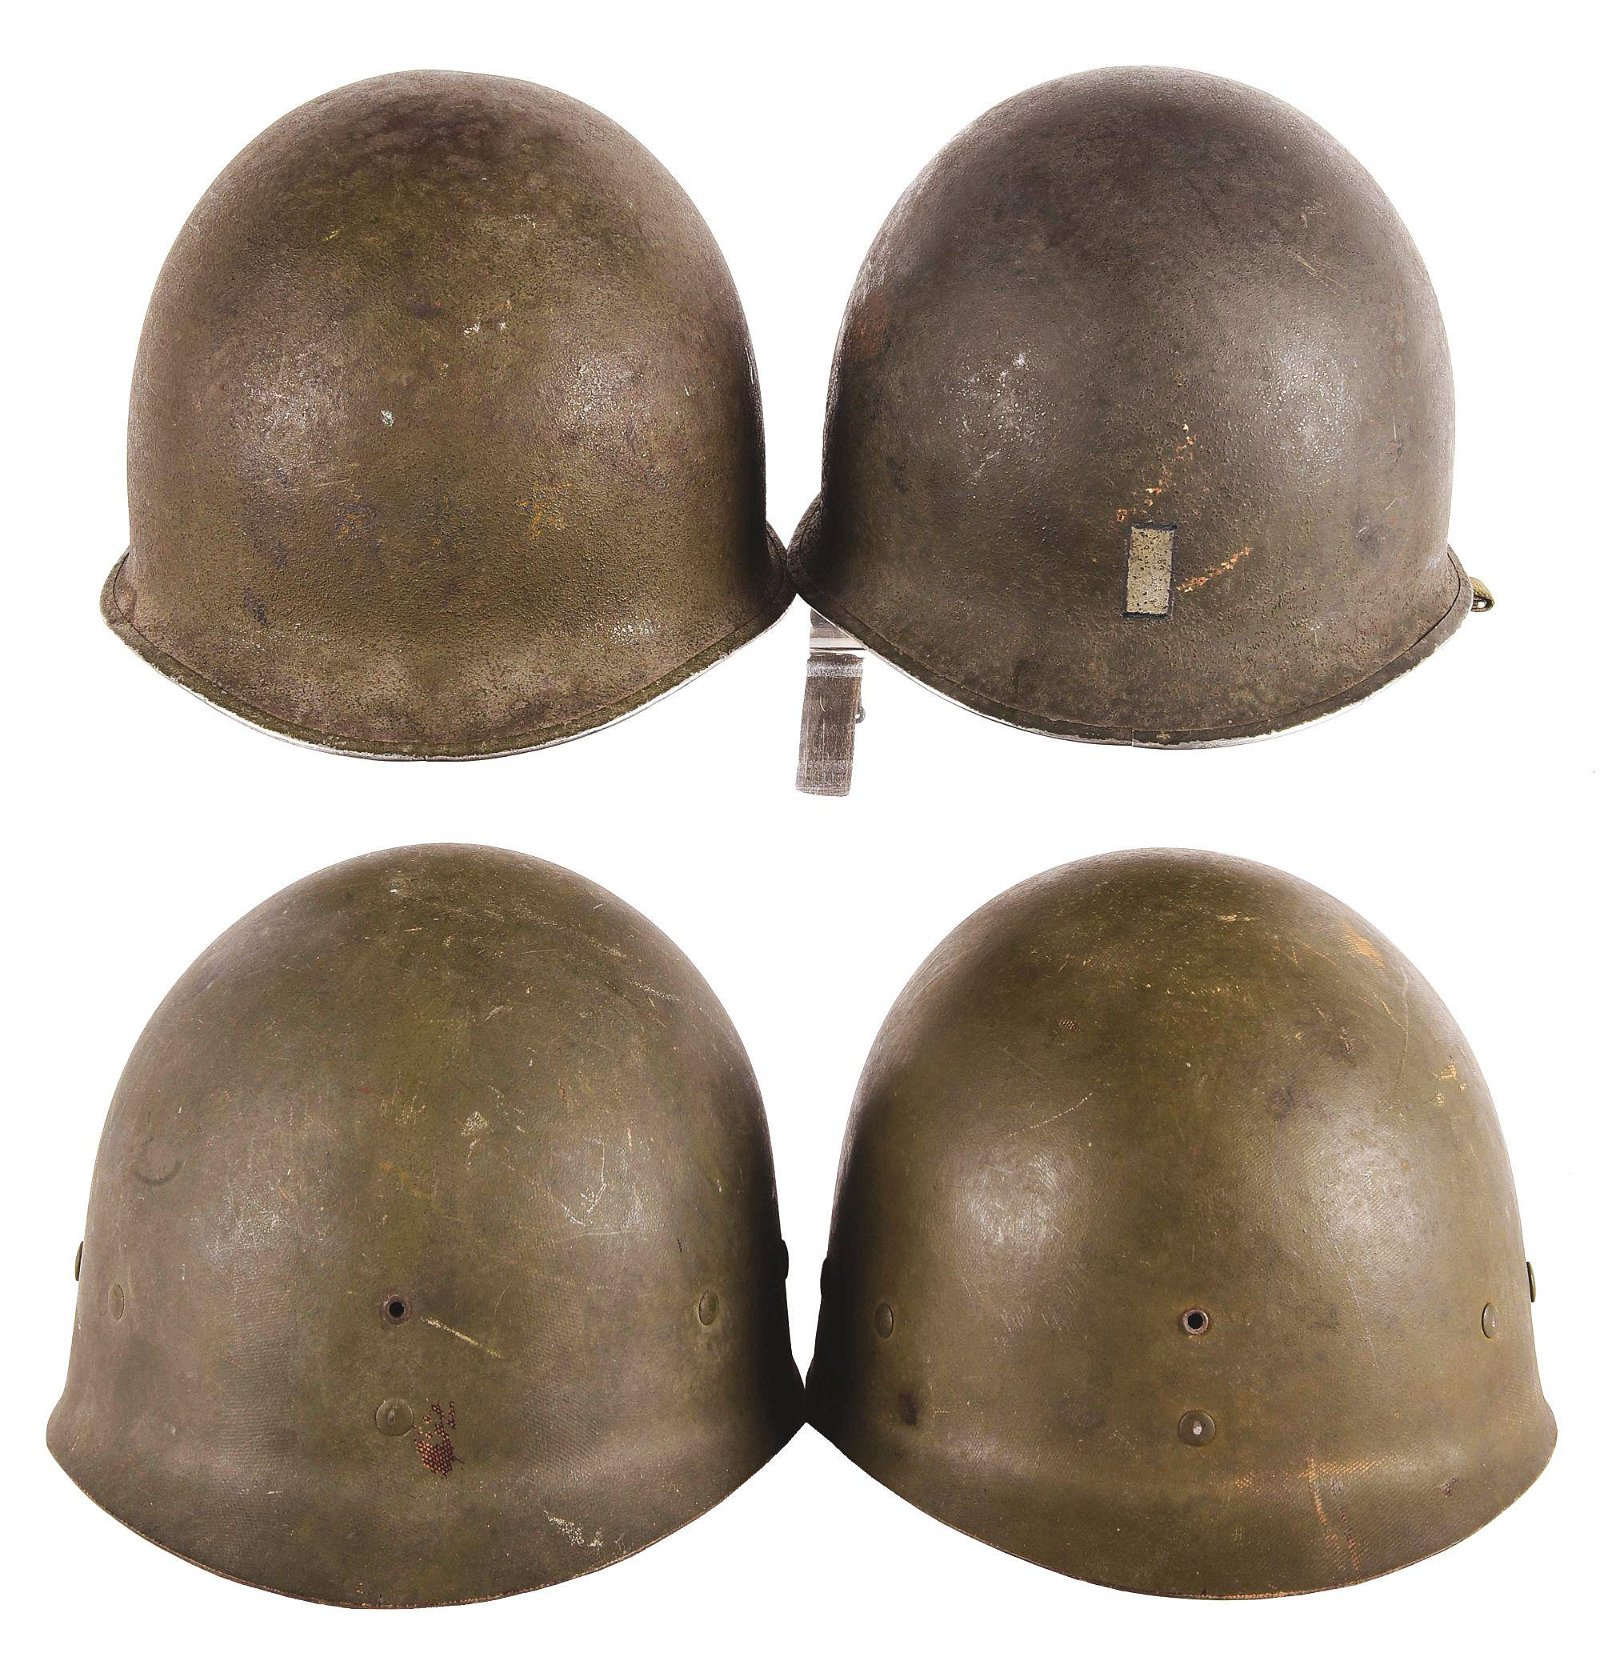 LOT OF FOUR: TWO WORLD WAR II M1 HELMETS WITH LINERS